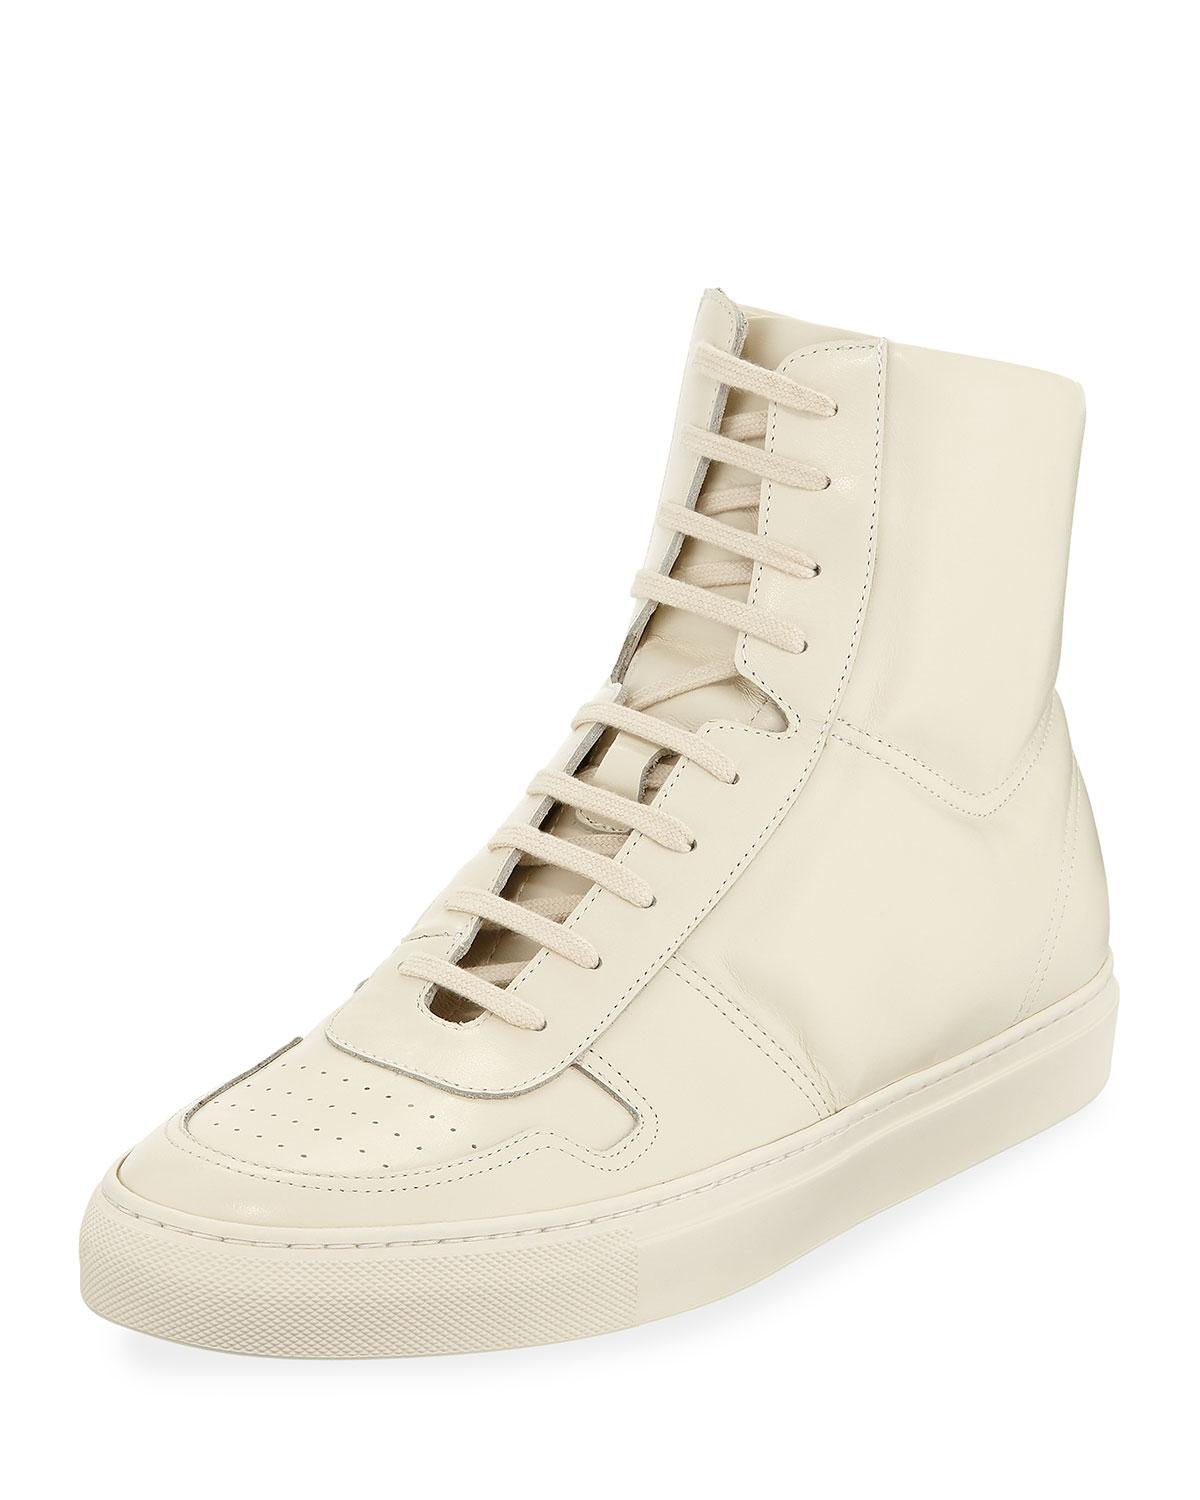 2fb686bf78c5 Lyst - Common Projects Men s Bball Leather High-top Sneakers in ...